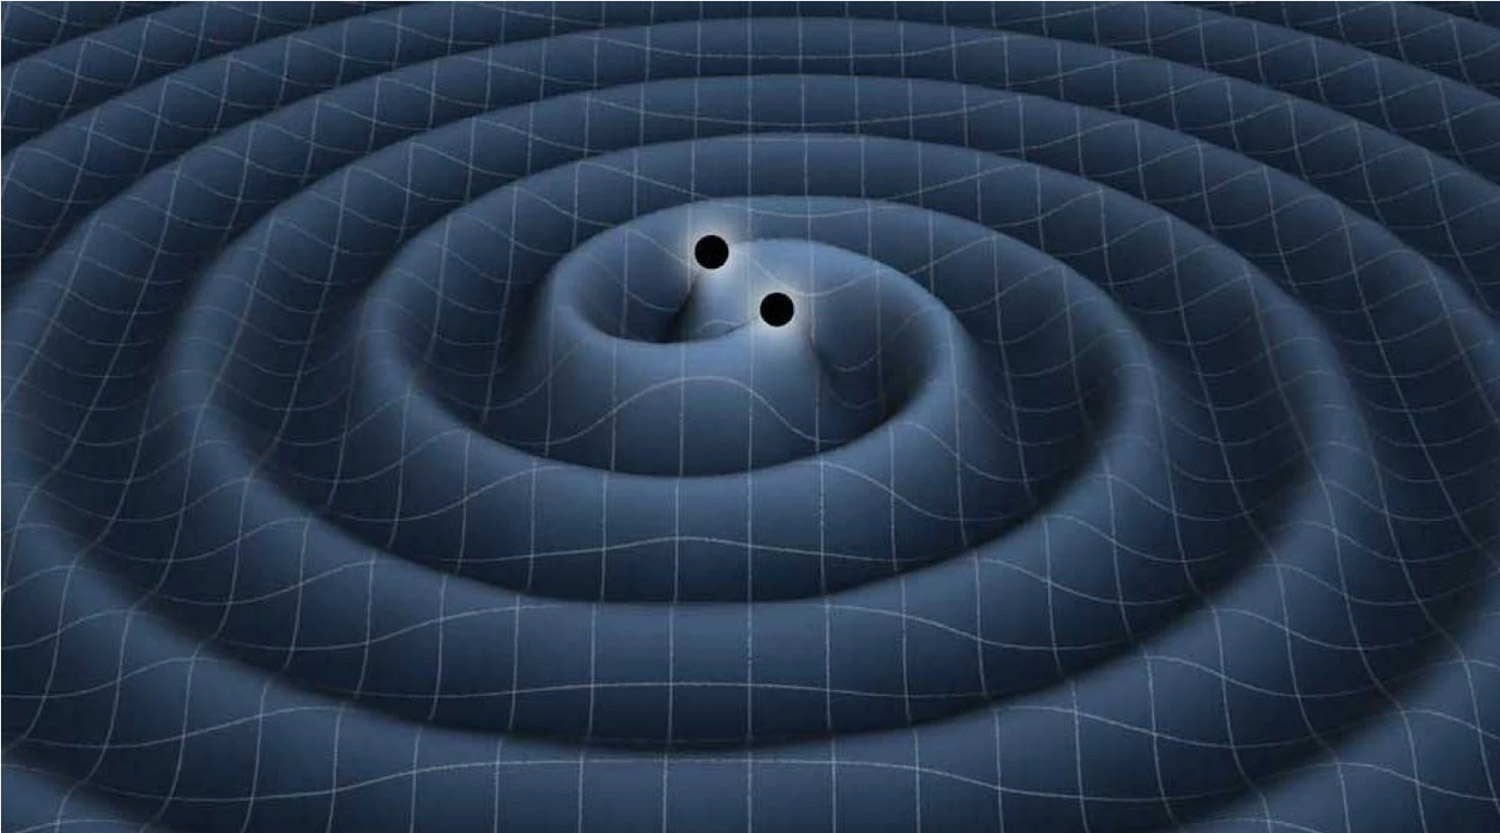 In this artist's conception, a binary black hole produces gravitational waves that travel outwards and carry energy away from the system.